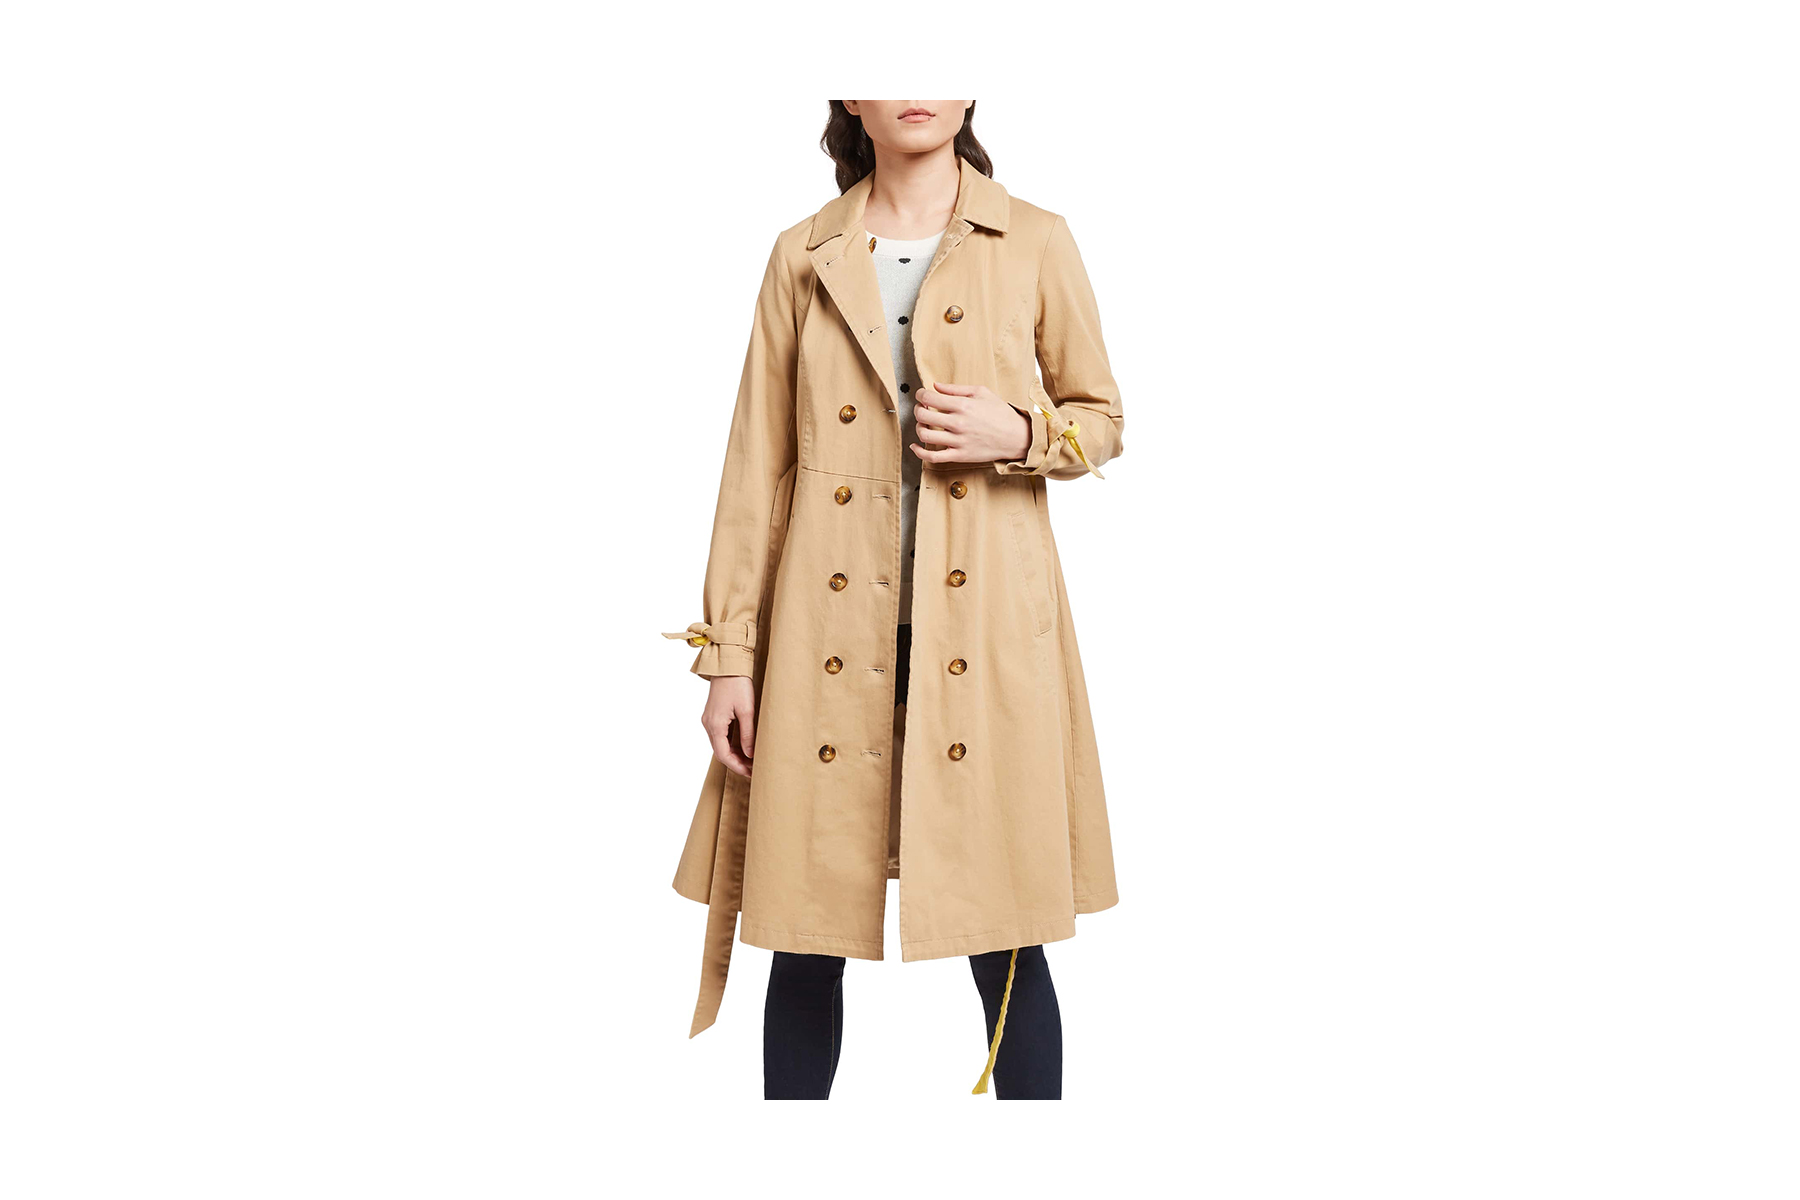 Modcloth Contrast Trench Coat